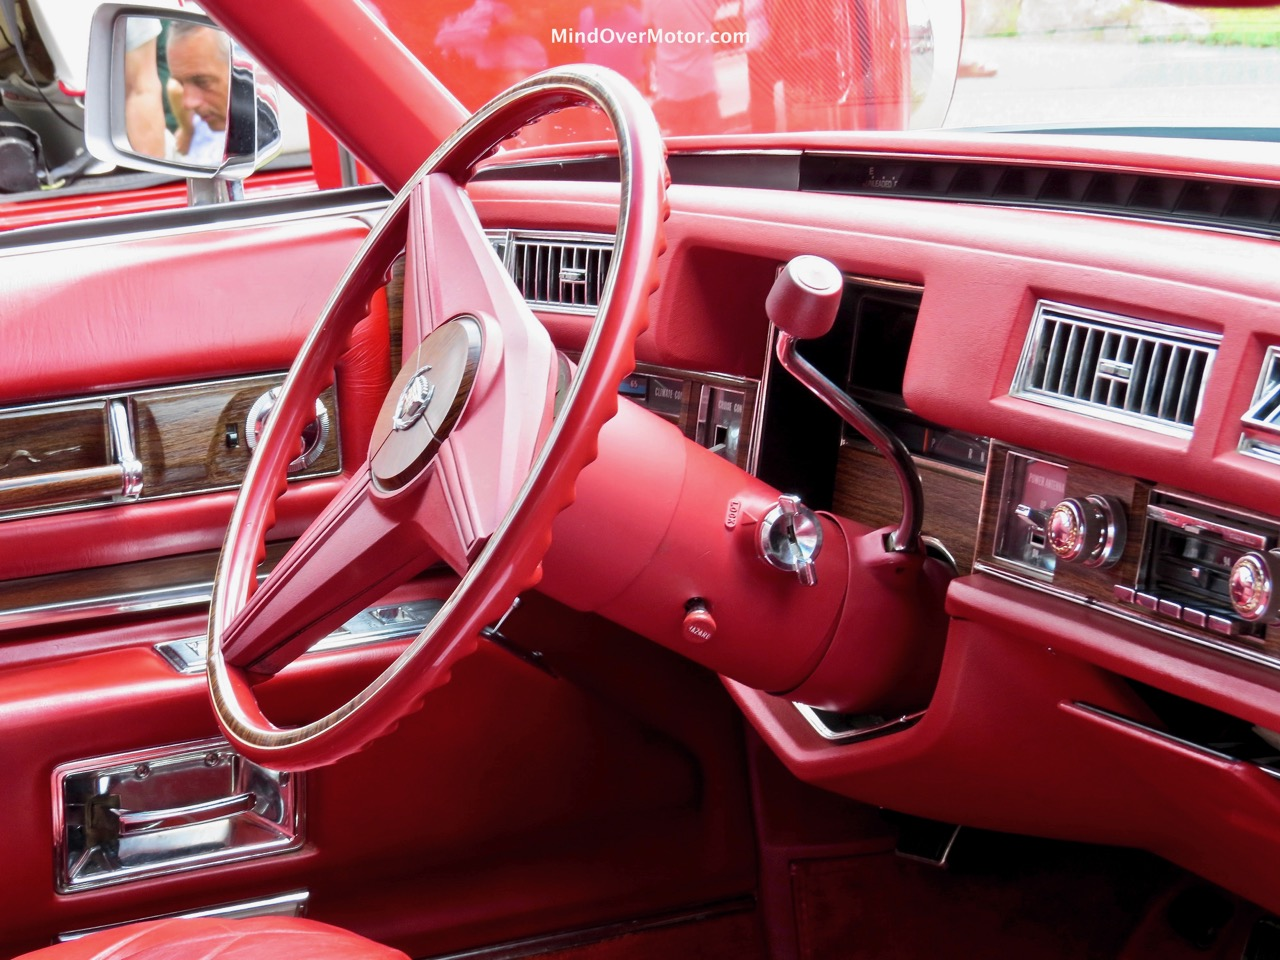 1976 Cadillac Fleetwood Interior 2